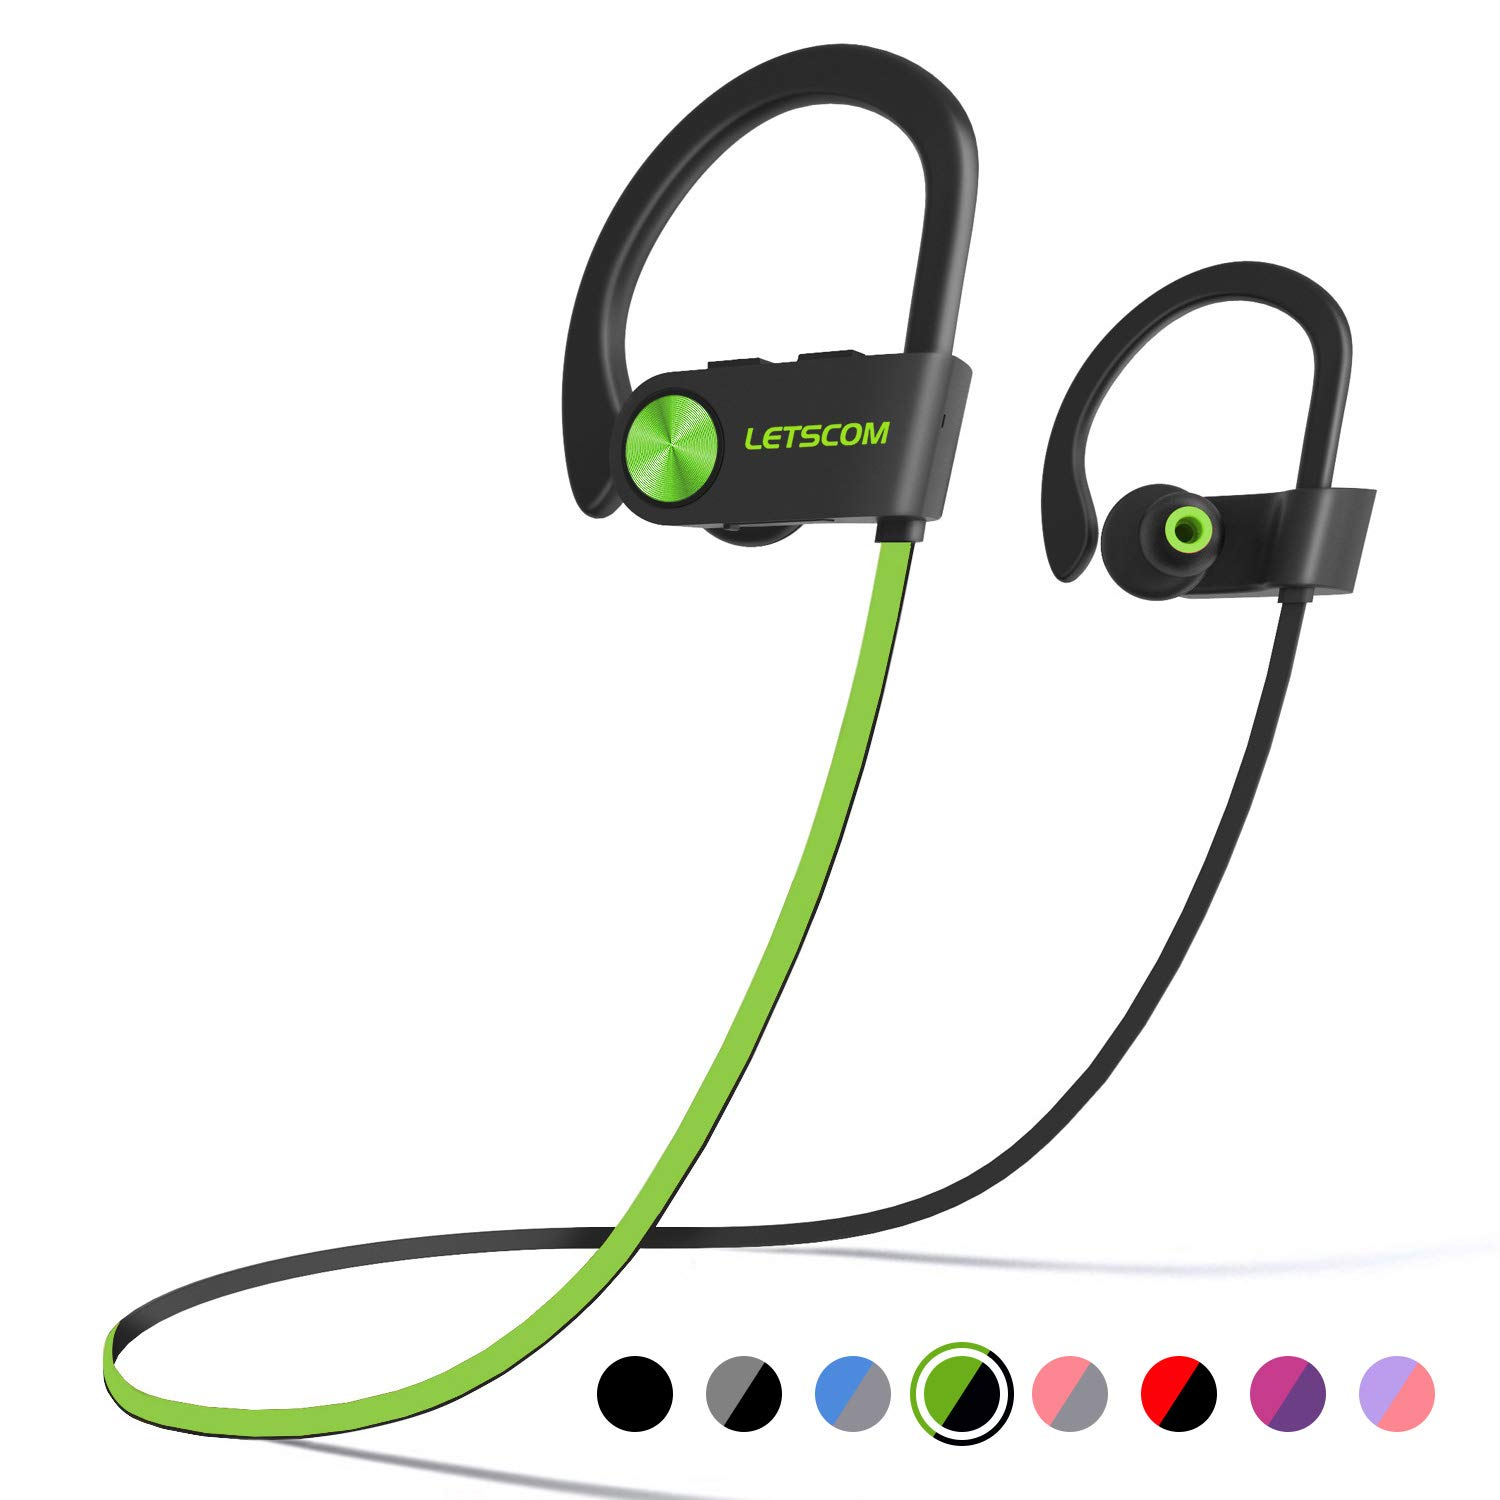 LETSCOM Bluetooth Headphones IPX7 Waterproof, Wireless Sport Earphones, HiFi Bass Stereo Sweatproof Earbuds w Mic, Noise Cancelling Headset for Workout, Running, Gym, 8 Hours Play Time